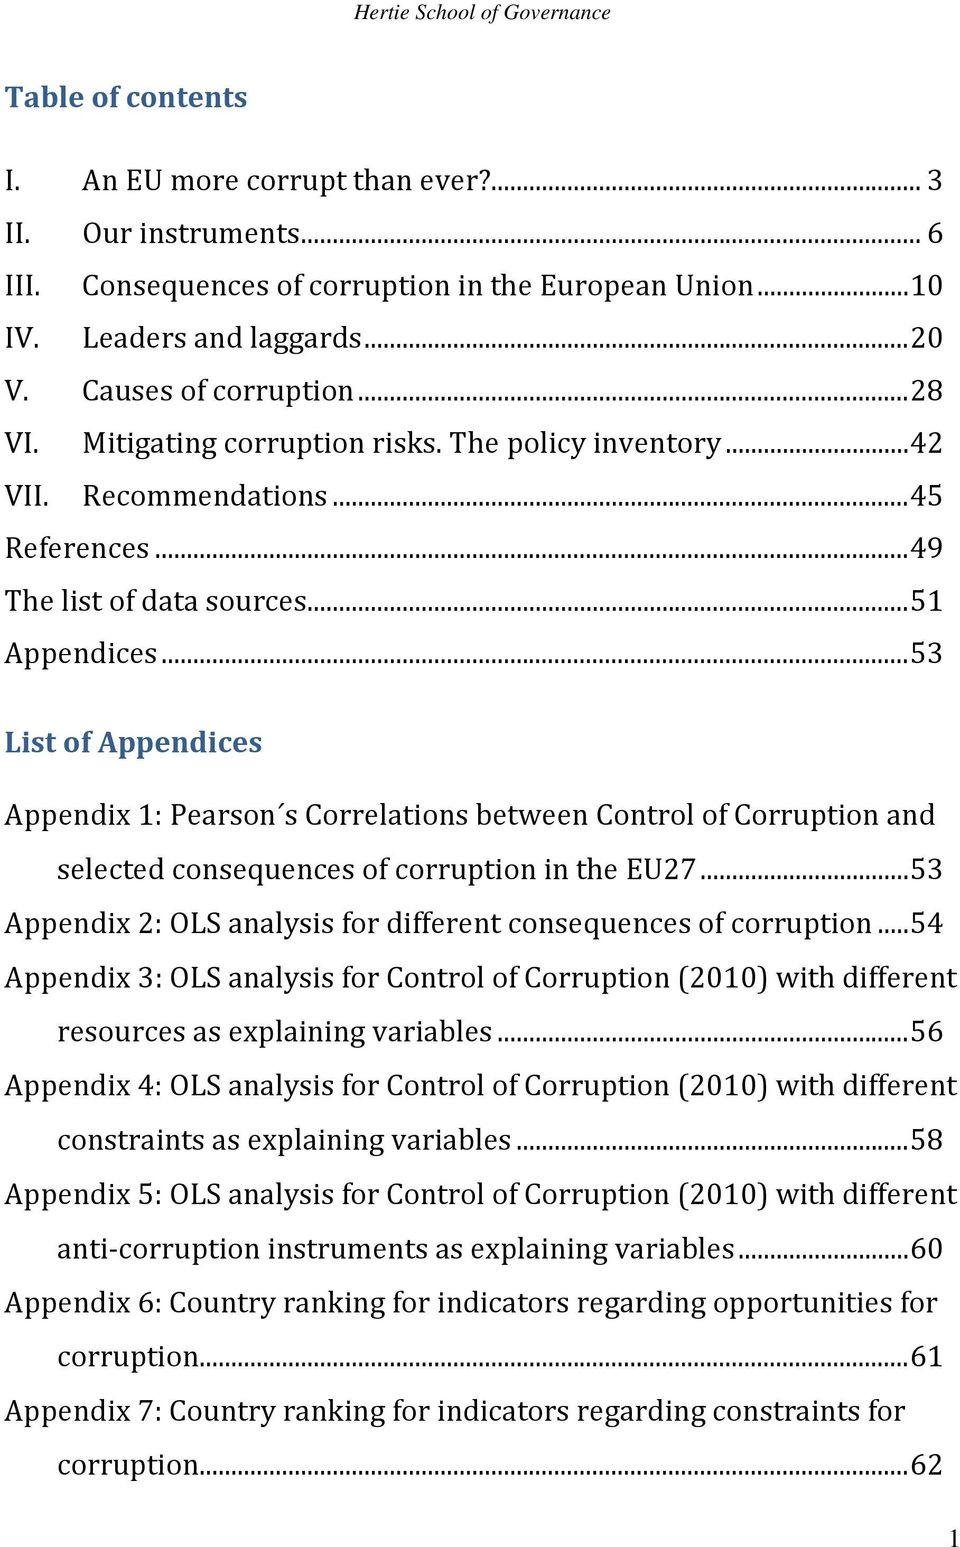 .. 53 List of Appendices Appendix 1: Pearson s Correlations between Control of Corruption and selected consequences of corruption in the EU27.